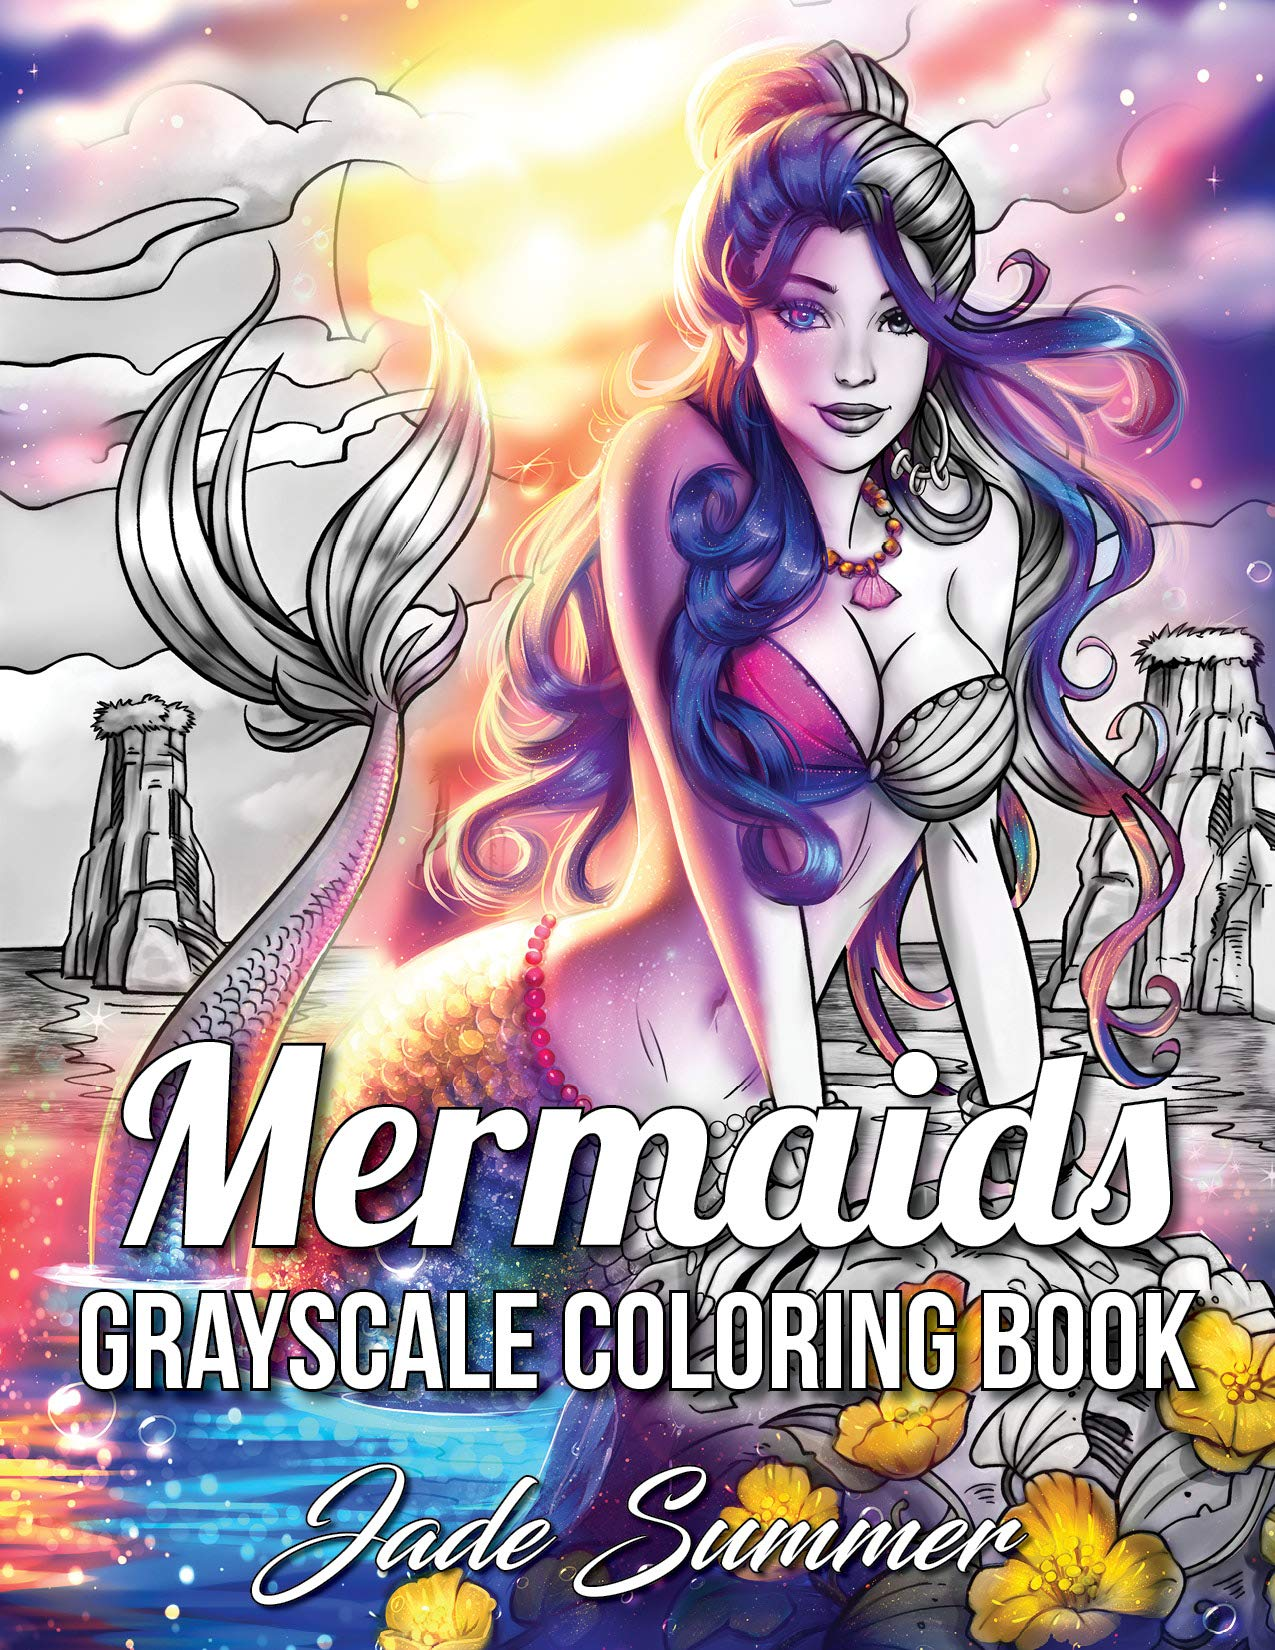 Mermaids Grayscale: An Adult Coloring Book with Sexy Mermaids